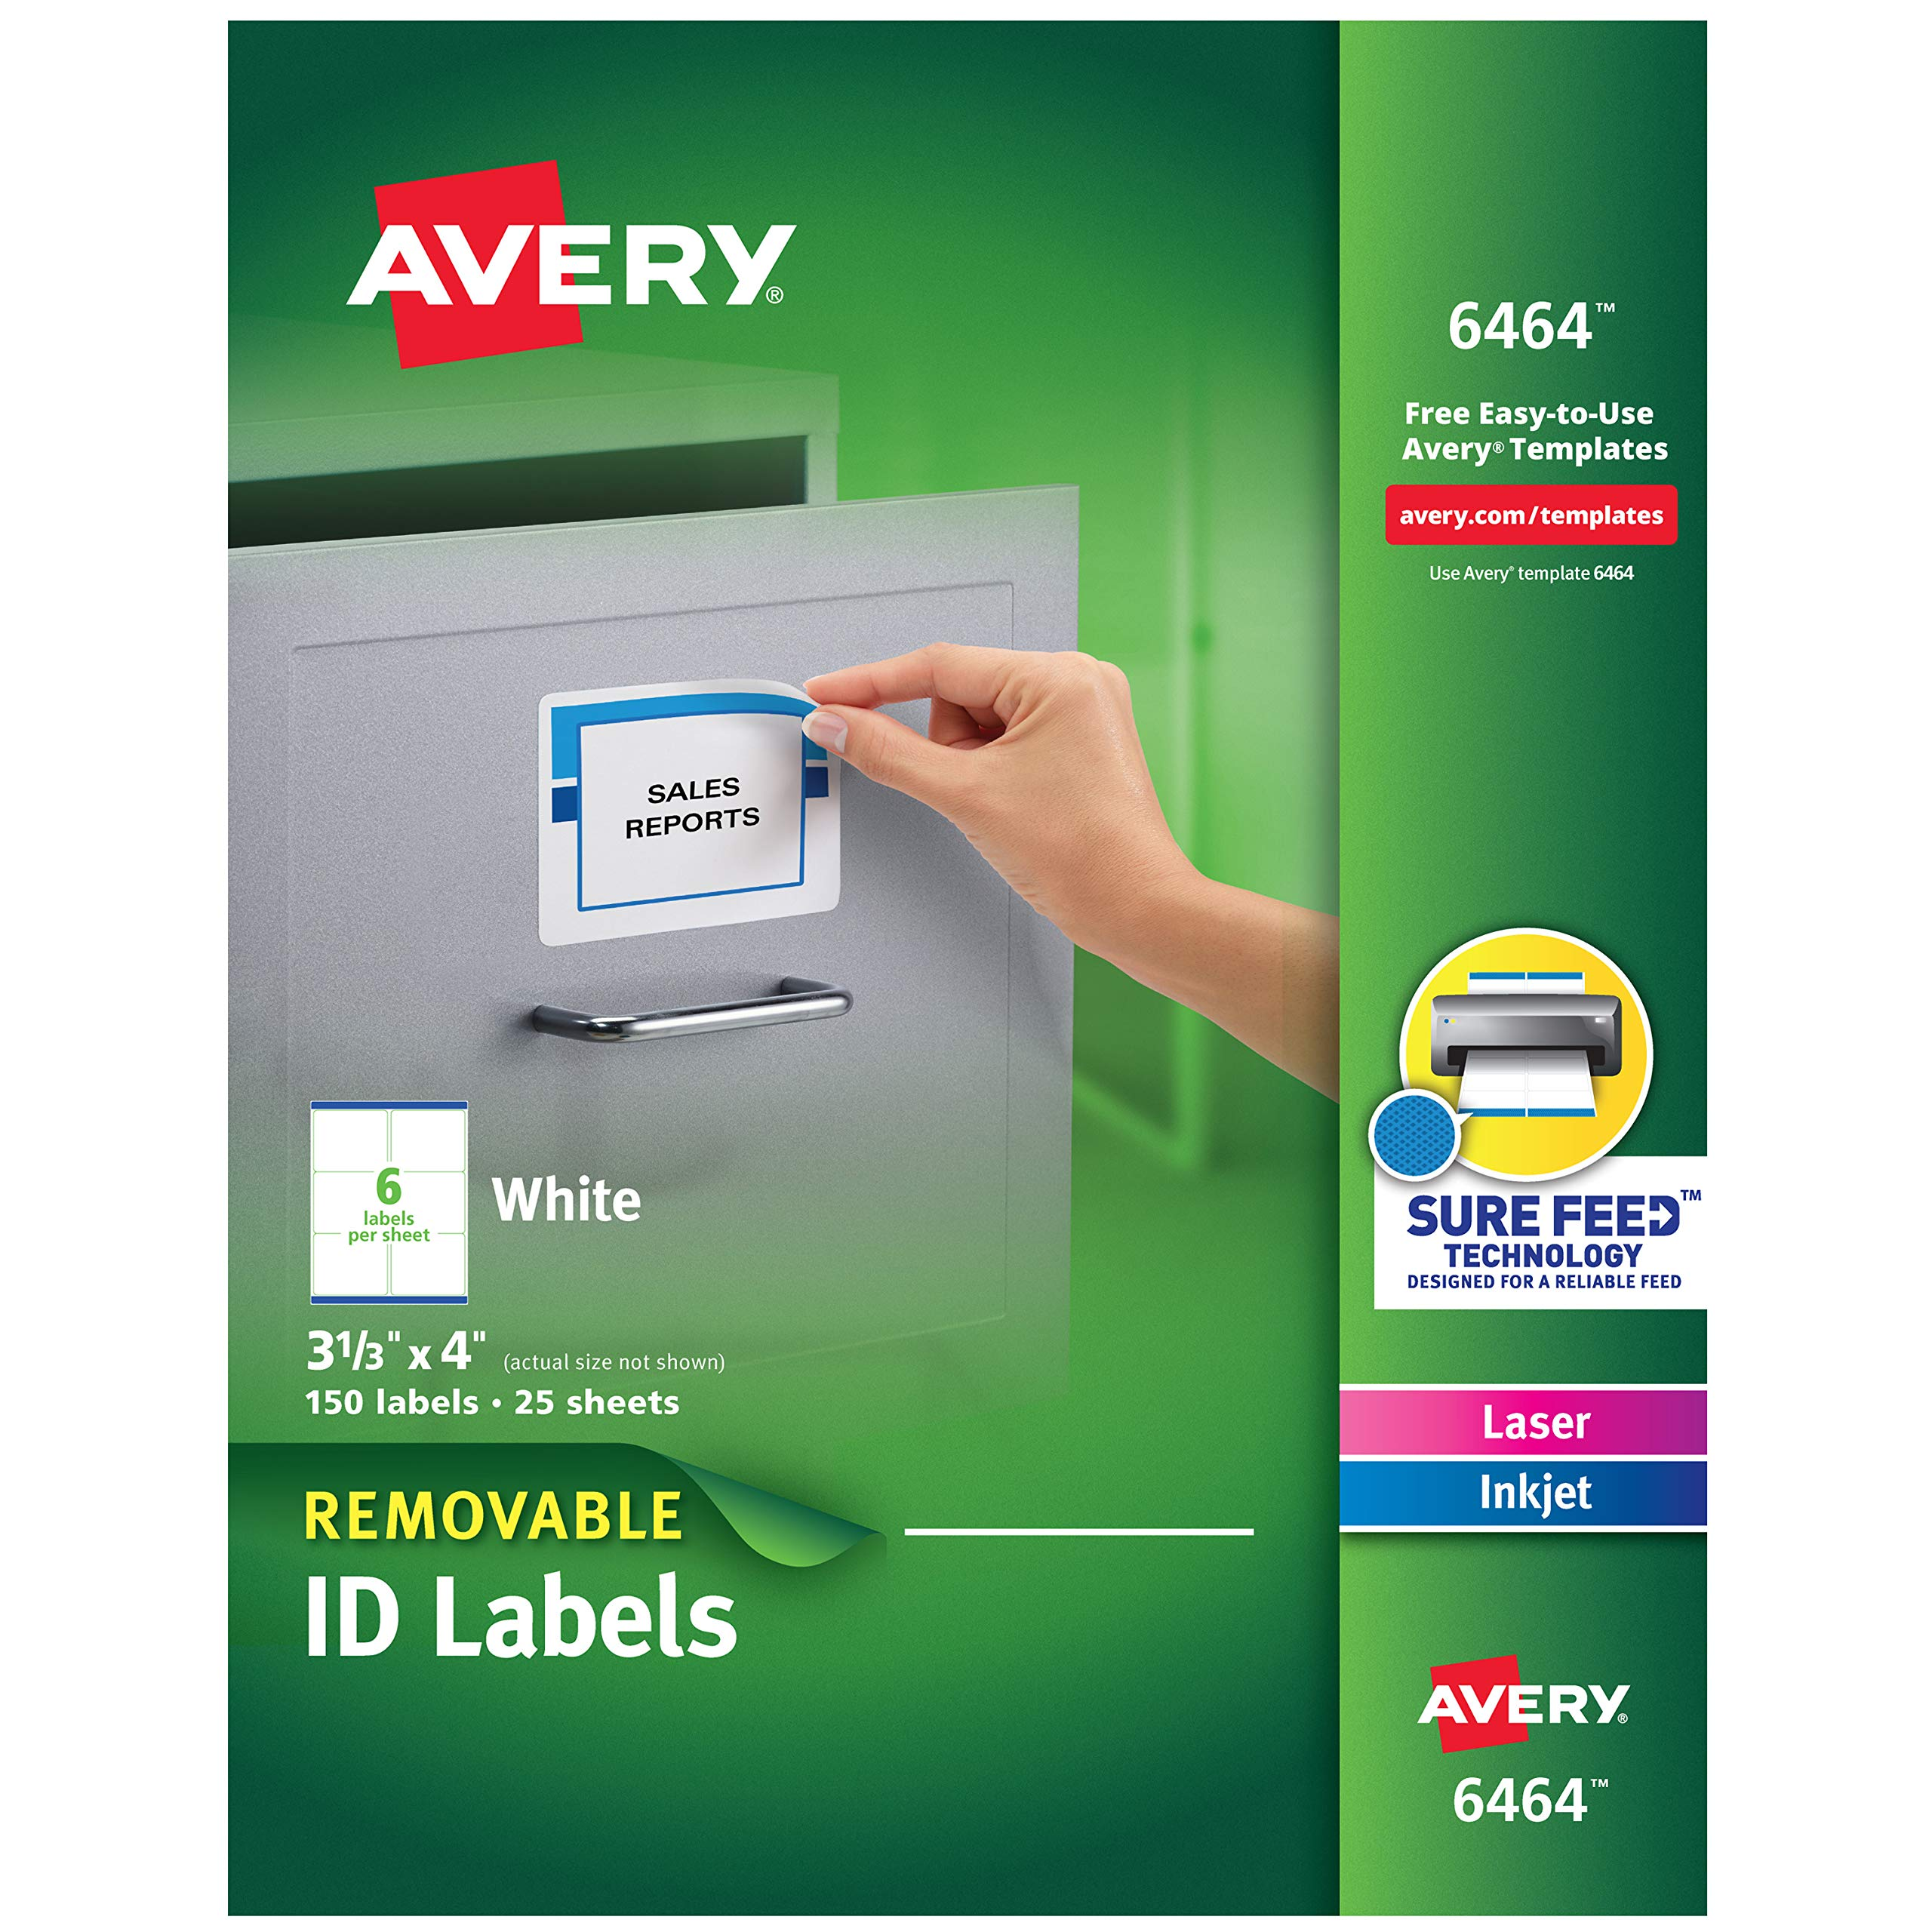 Avery Removable 3-1/3 x 4 Inch White ID Labels 150 Pack (6464) by AVERY